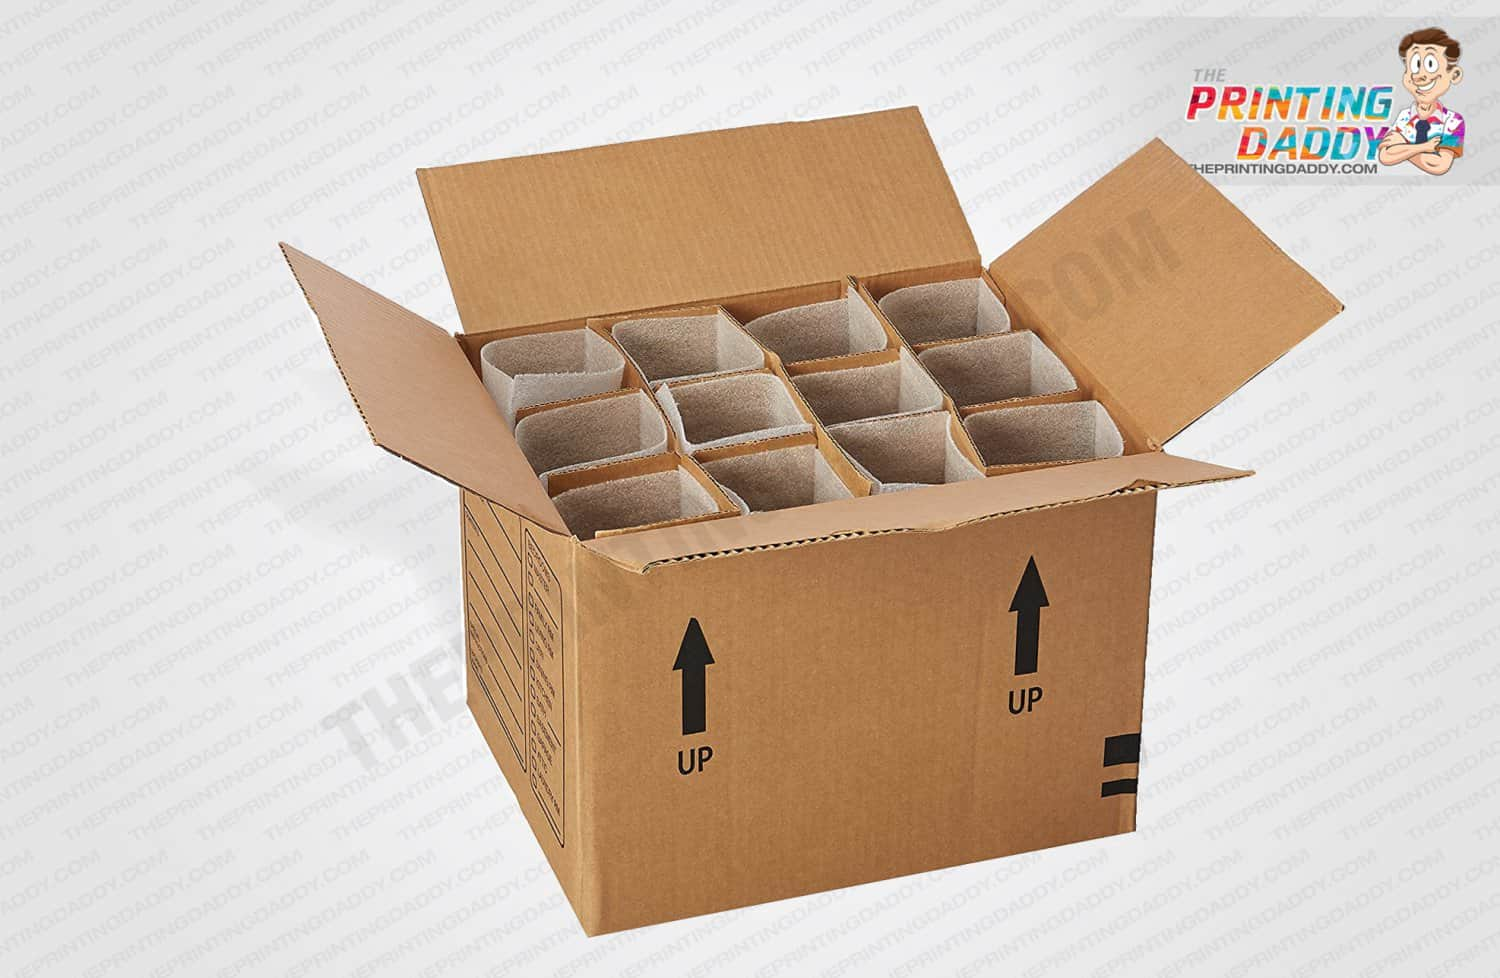 Cardboard Box Dividers Best Custom Cardboard Box Dividers Partitions The Printing Daddy